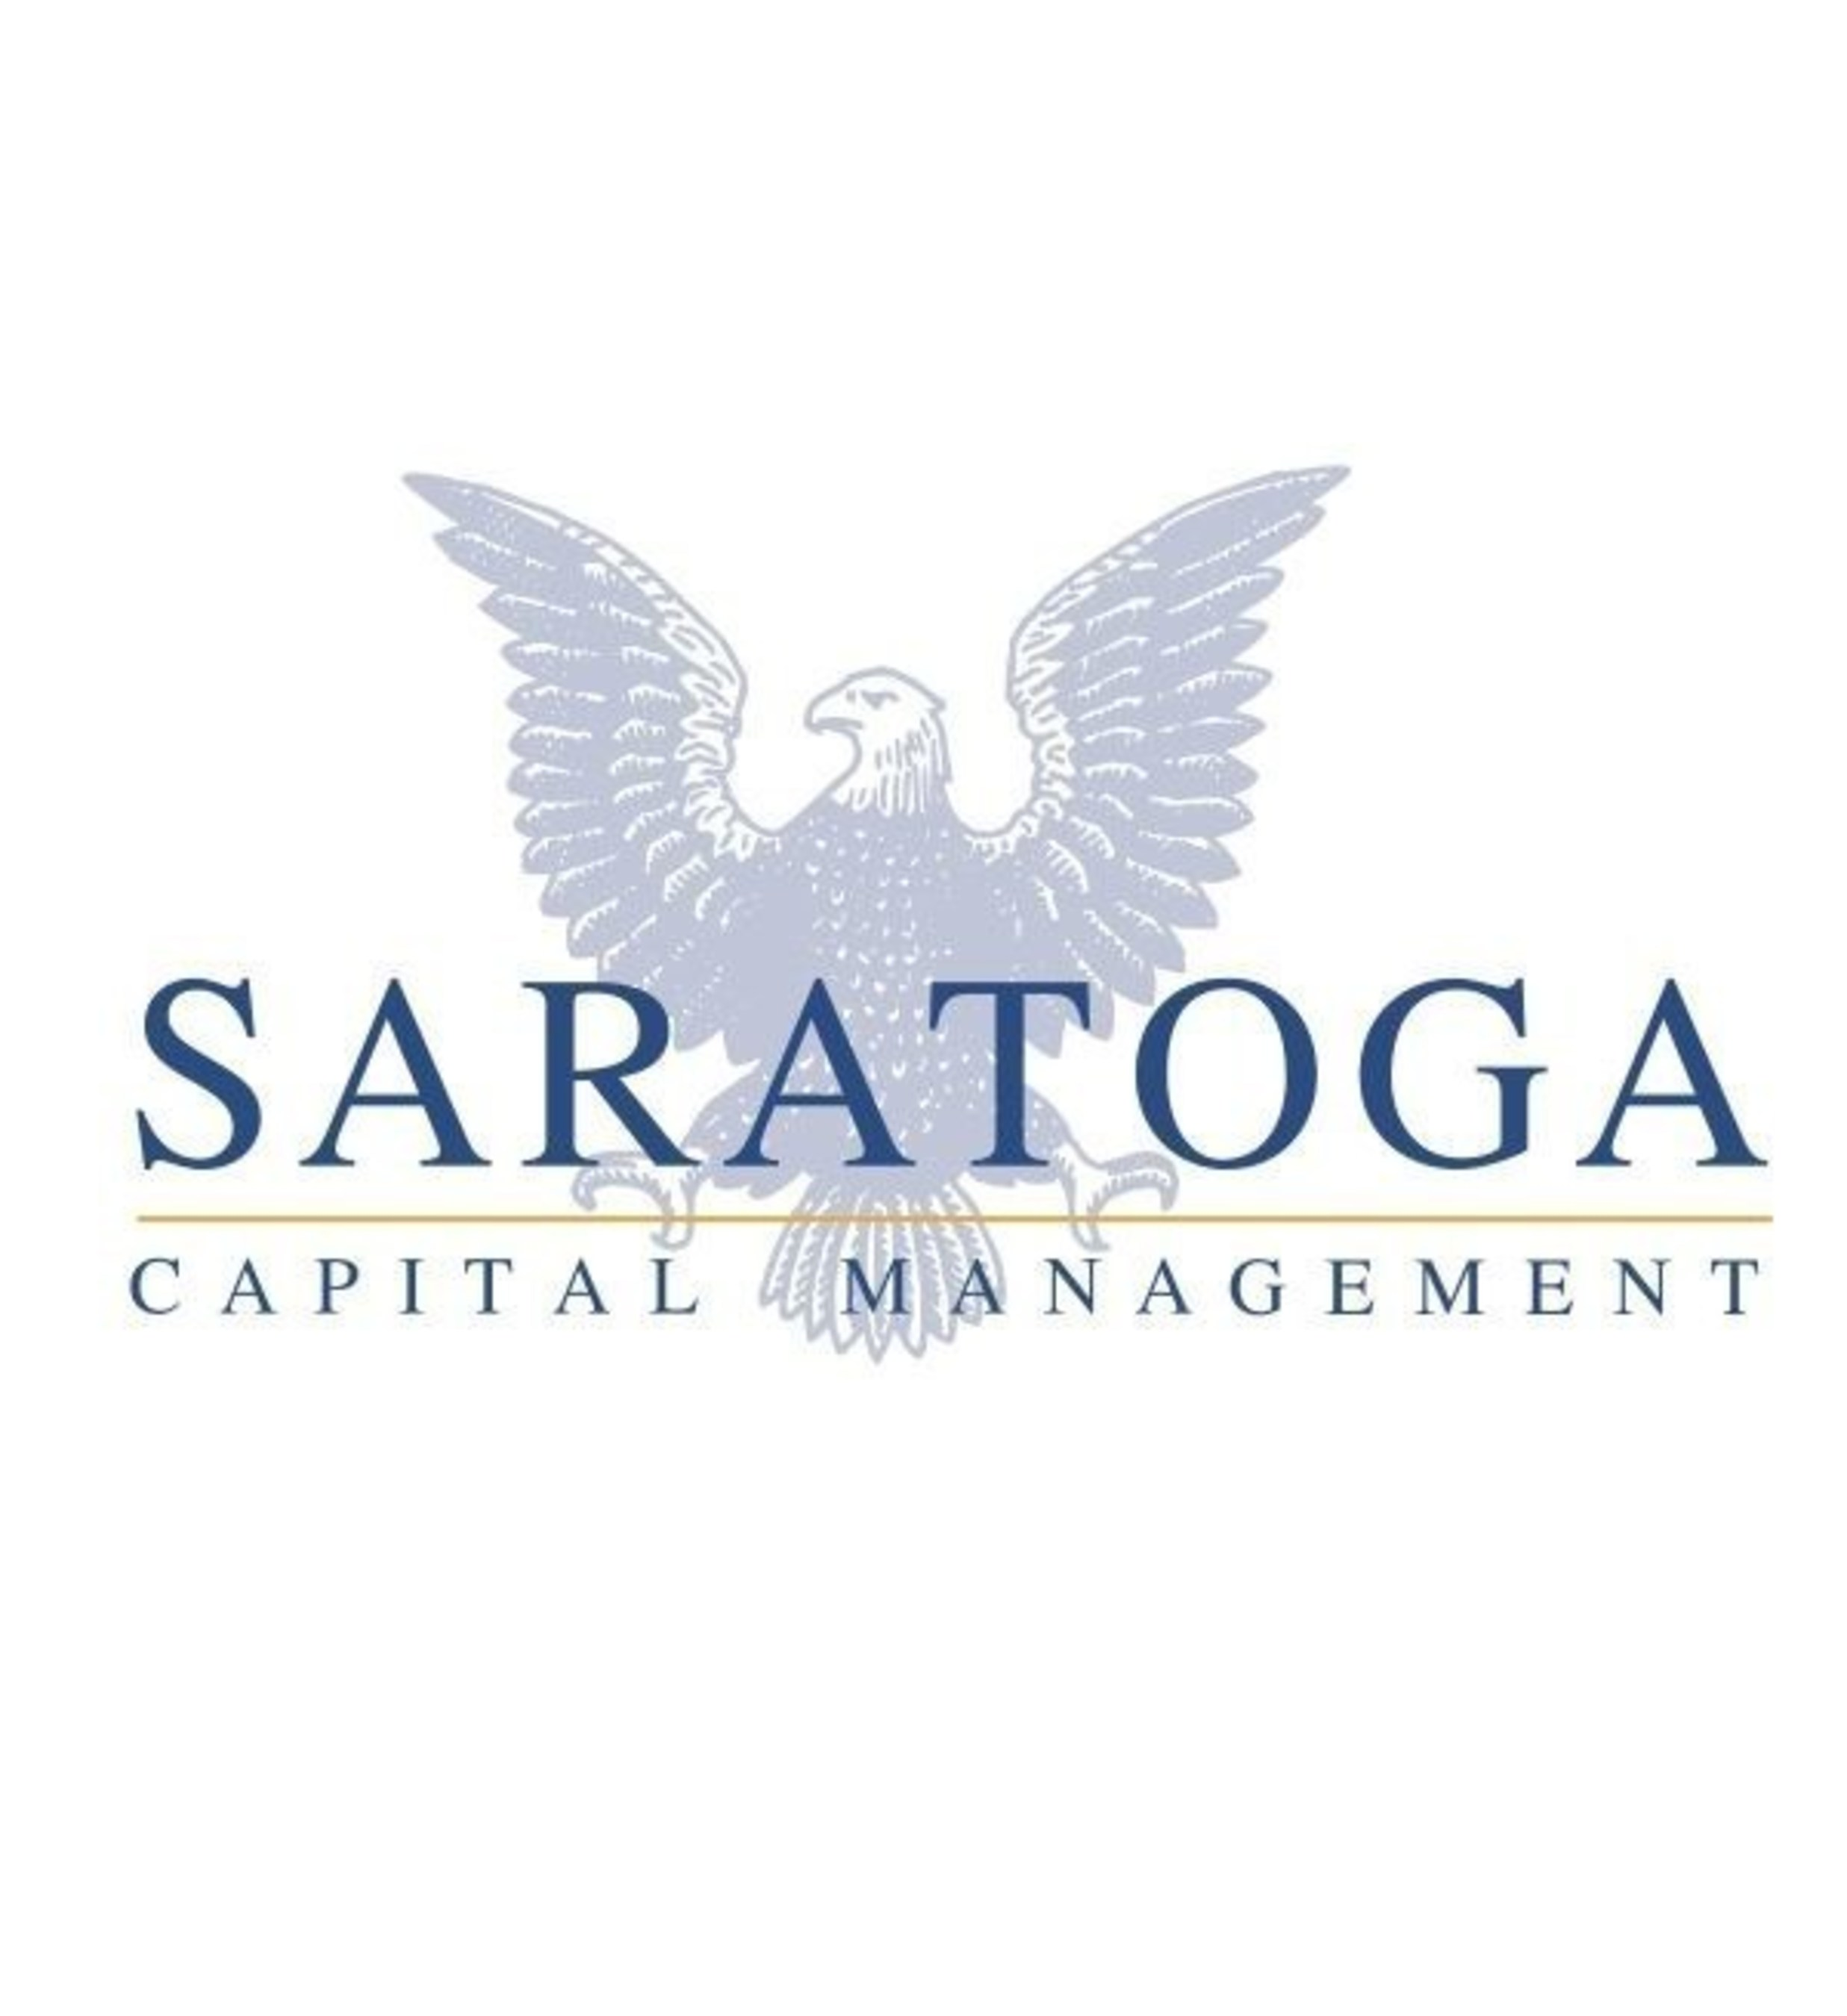 Saratoga Capital Management, LLC Announces Changes to its Suggested Asset Allocations